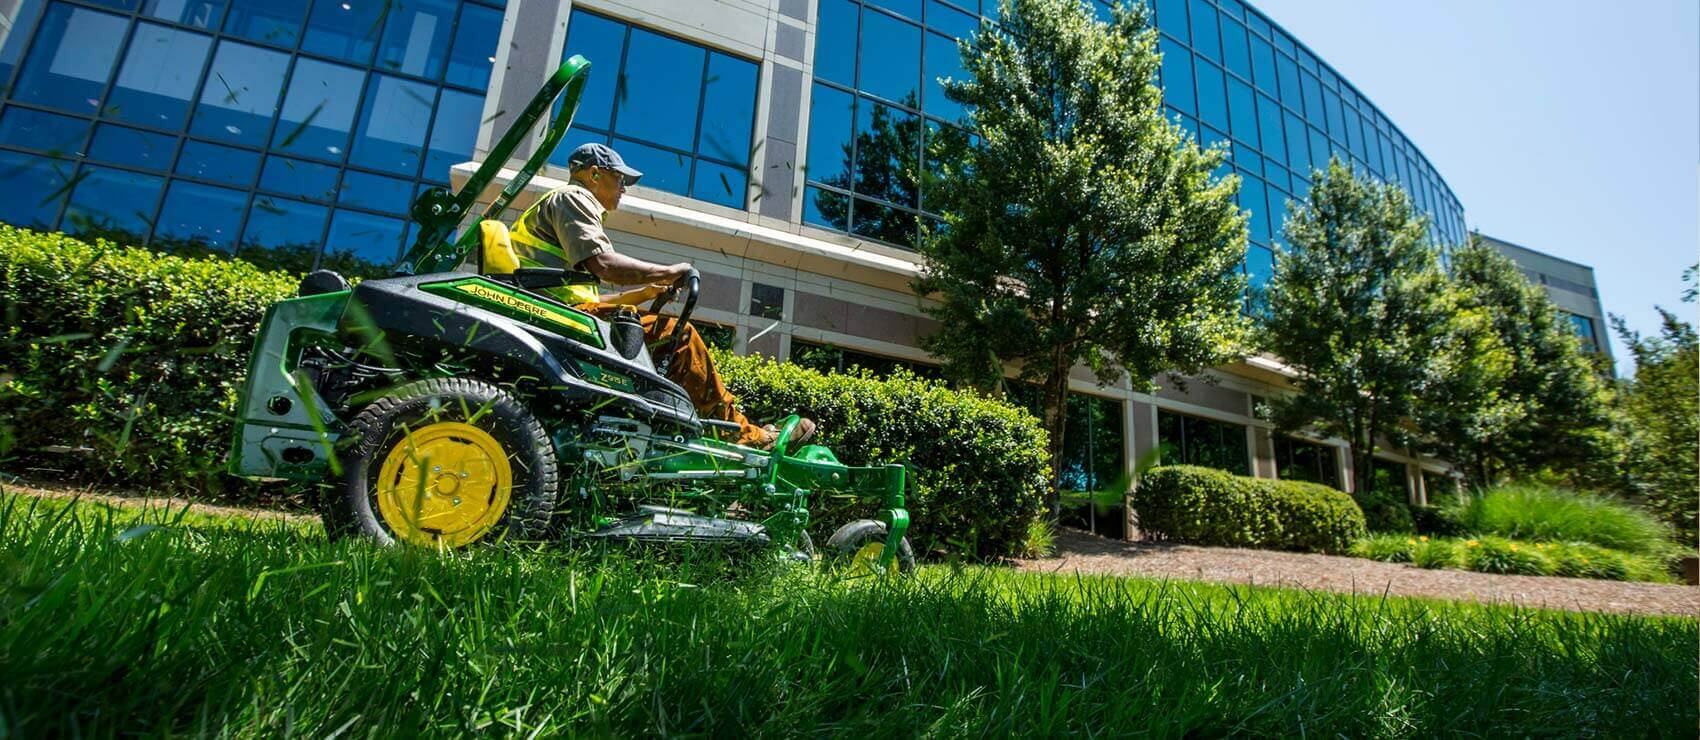 Carlisle Outdoor Power Equipment Lawn and Garden Commercial